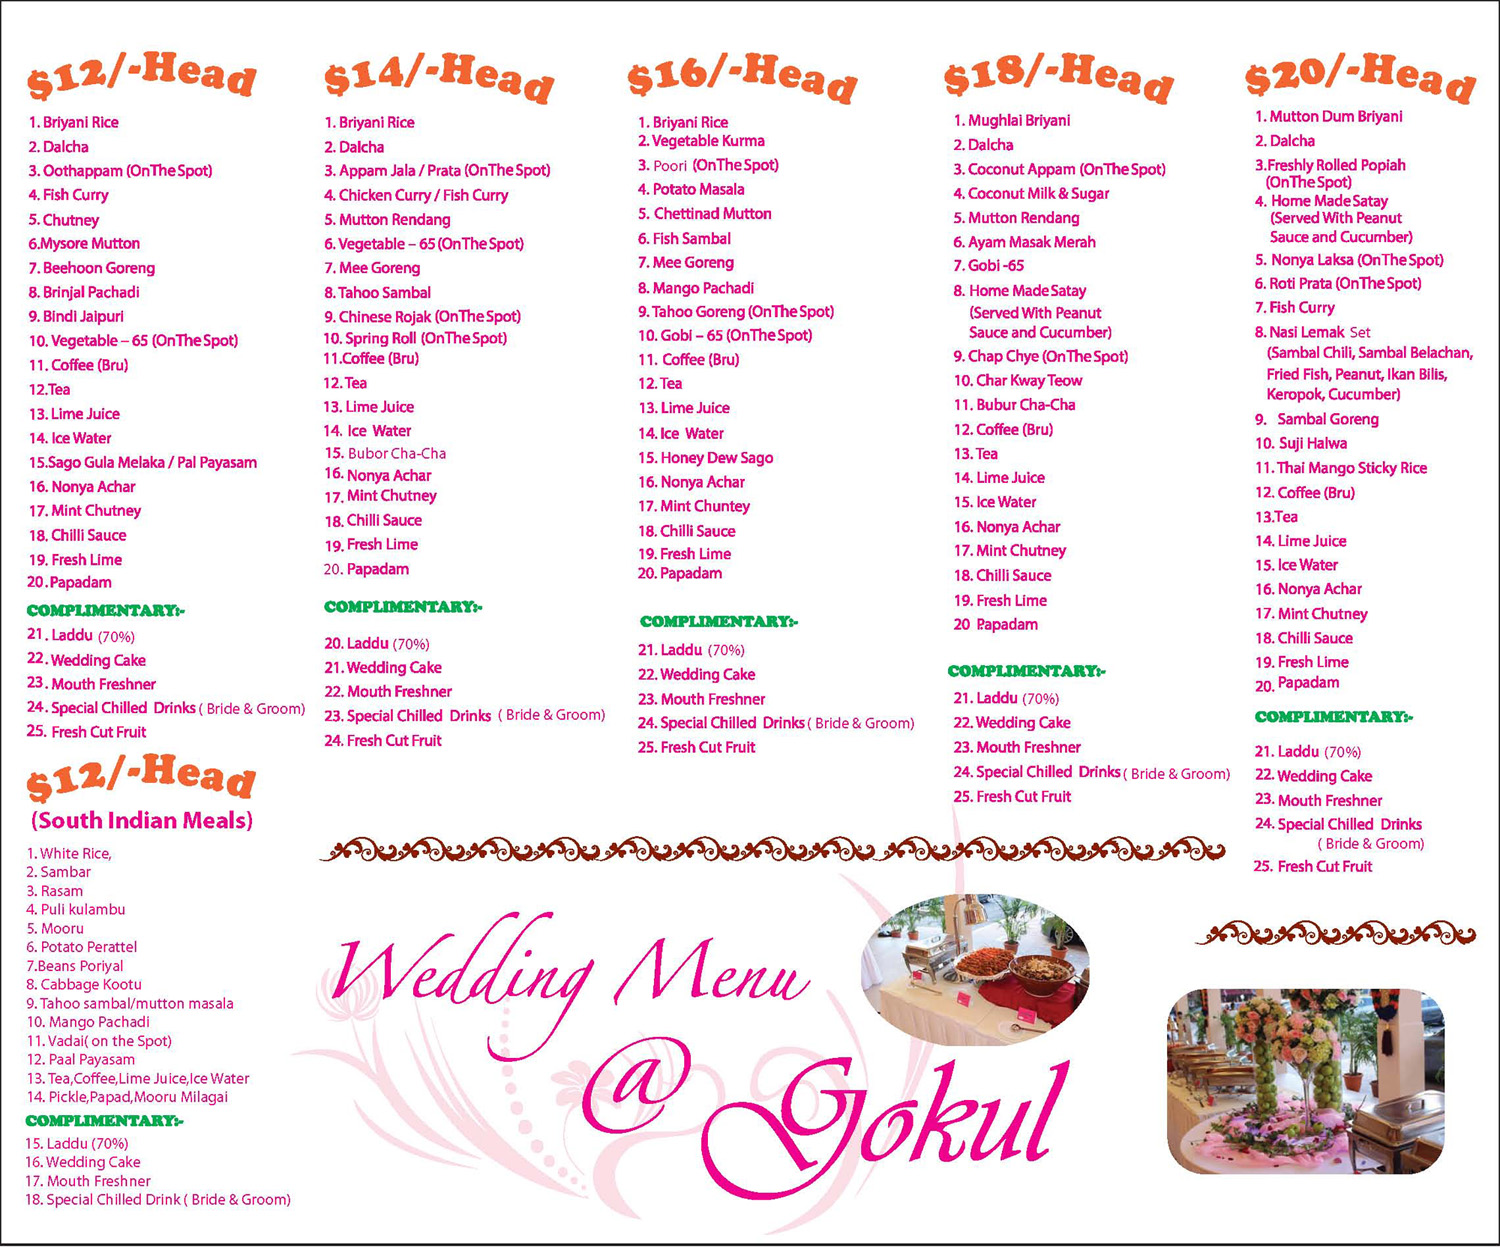 Wedding Food Buffet Menus: Gokul Vegetarian Restaurant Singapore